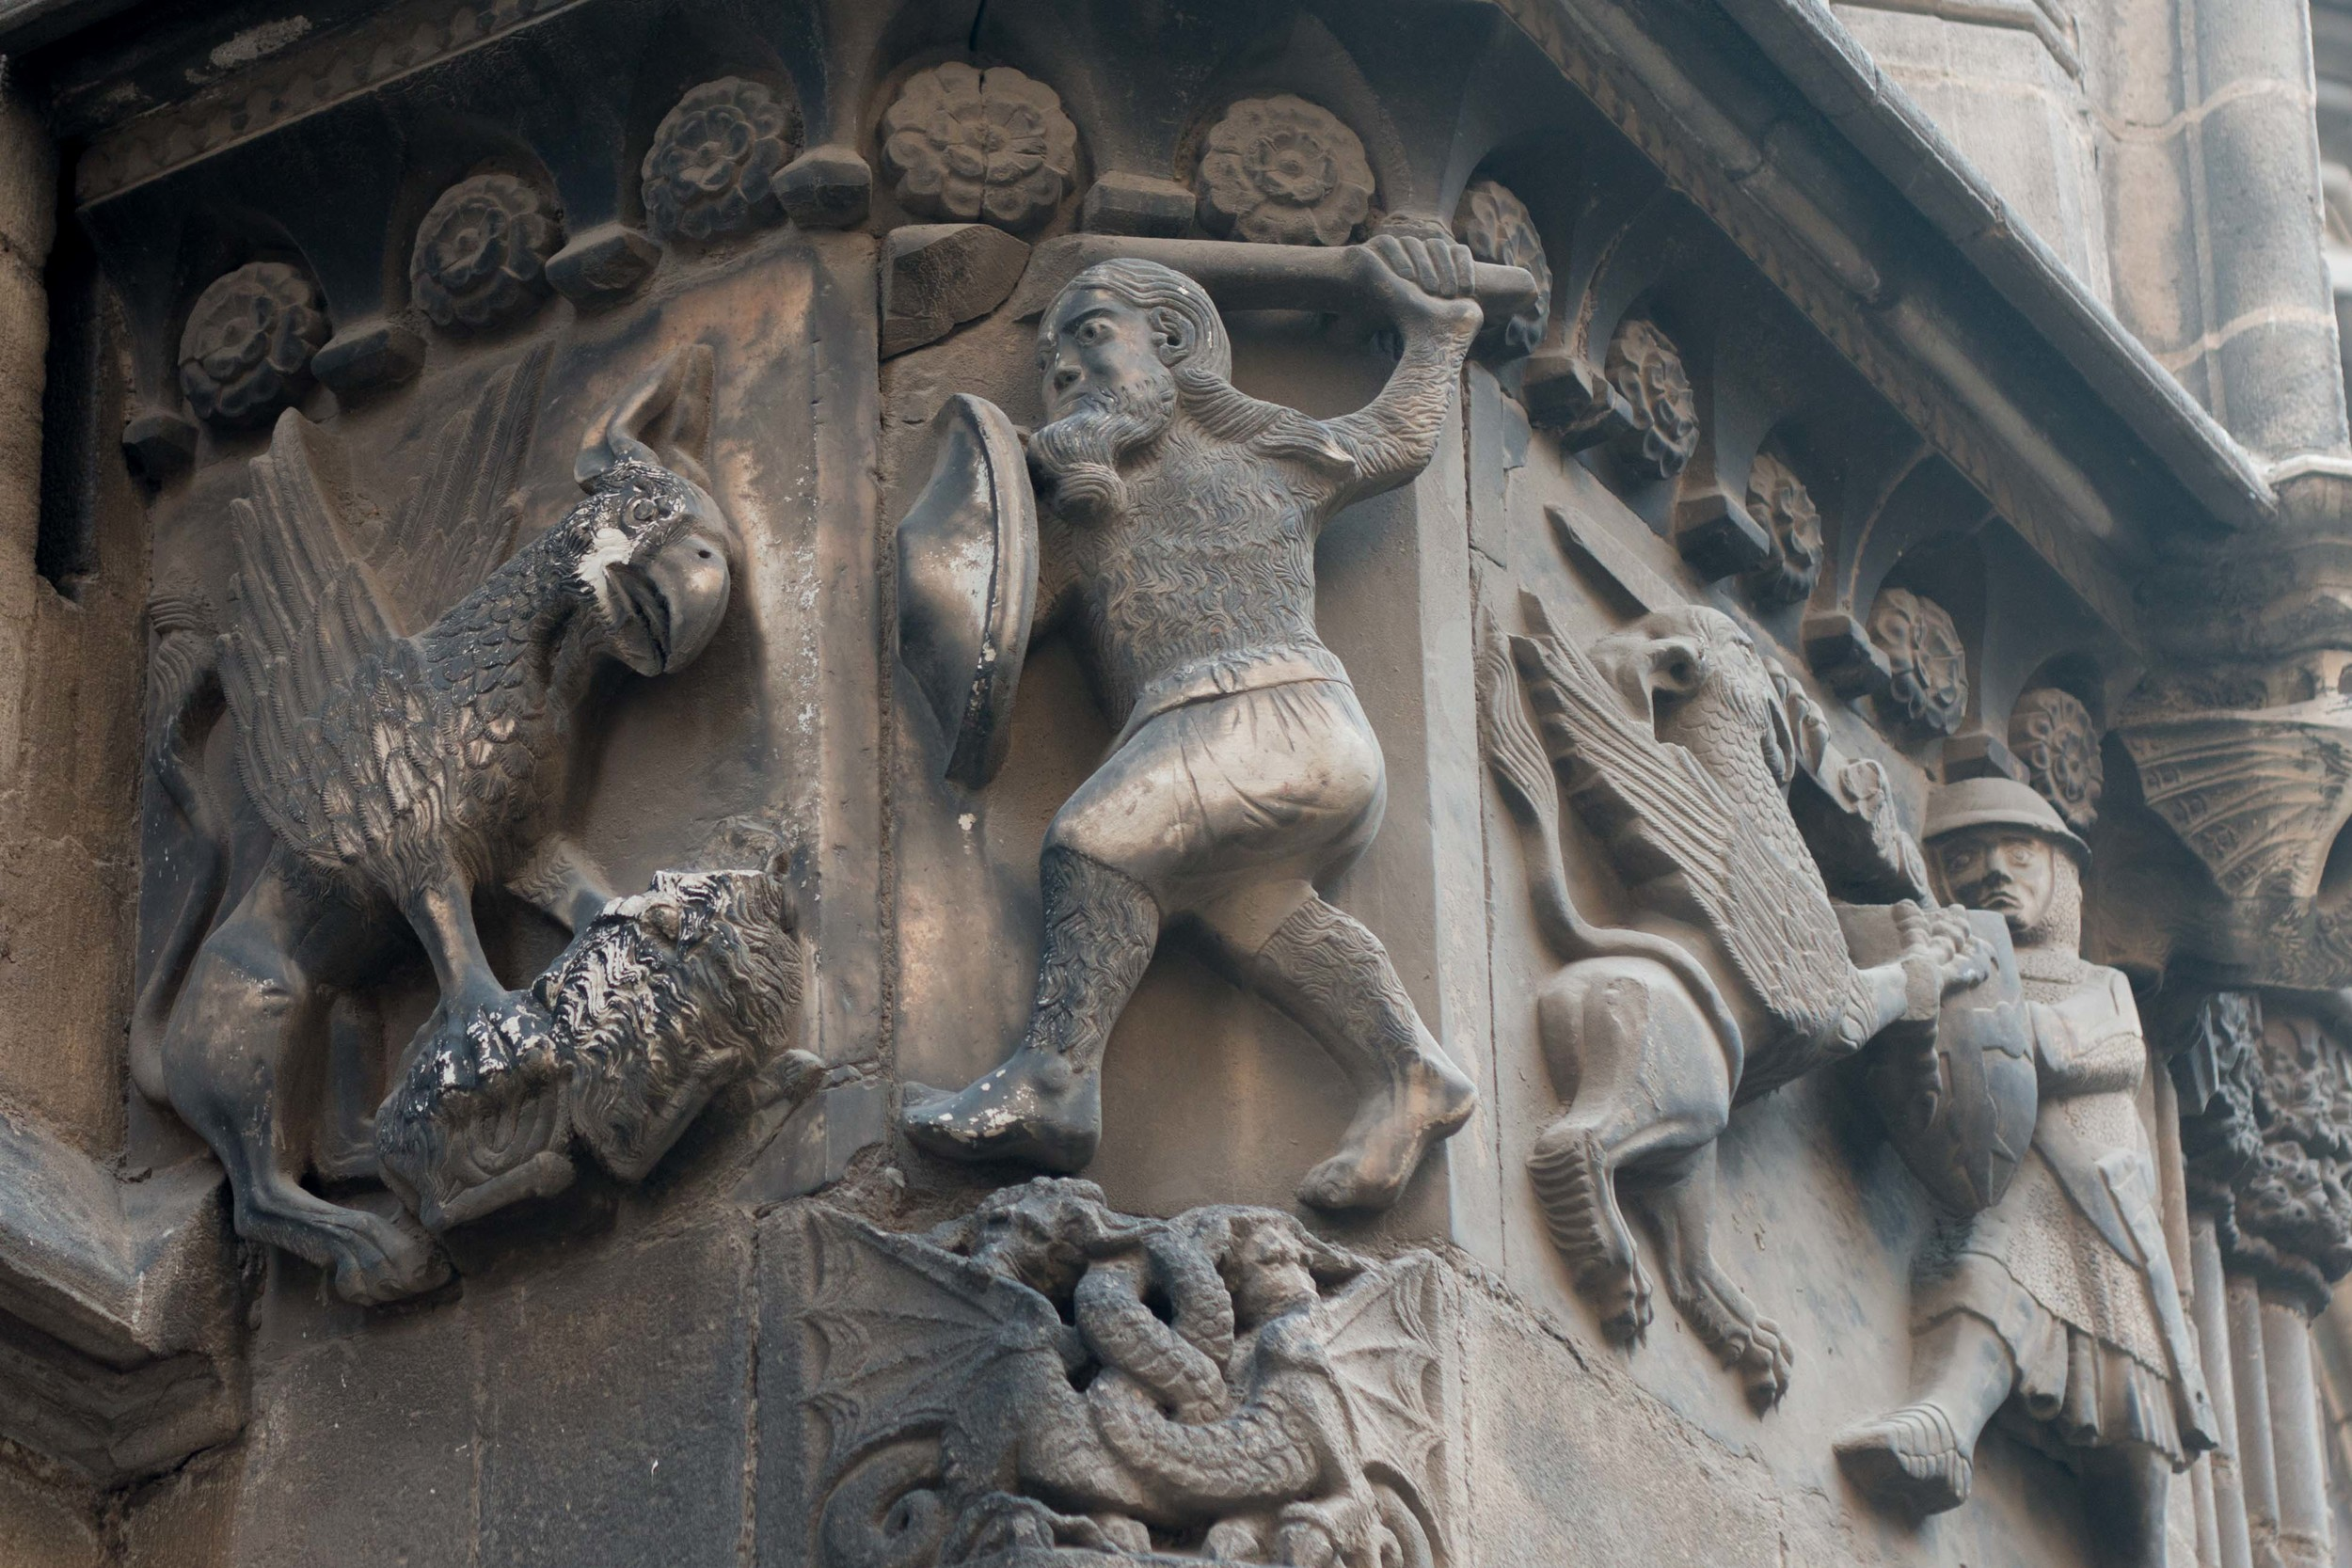 Carving of Wilfred the Hairy on one of the buildings in Placa del Rei